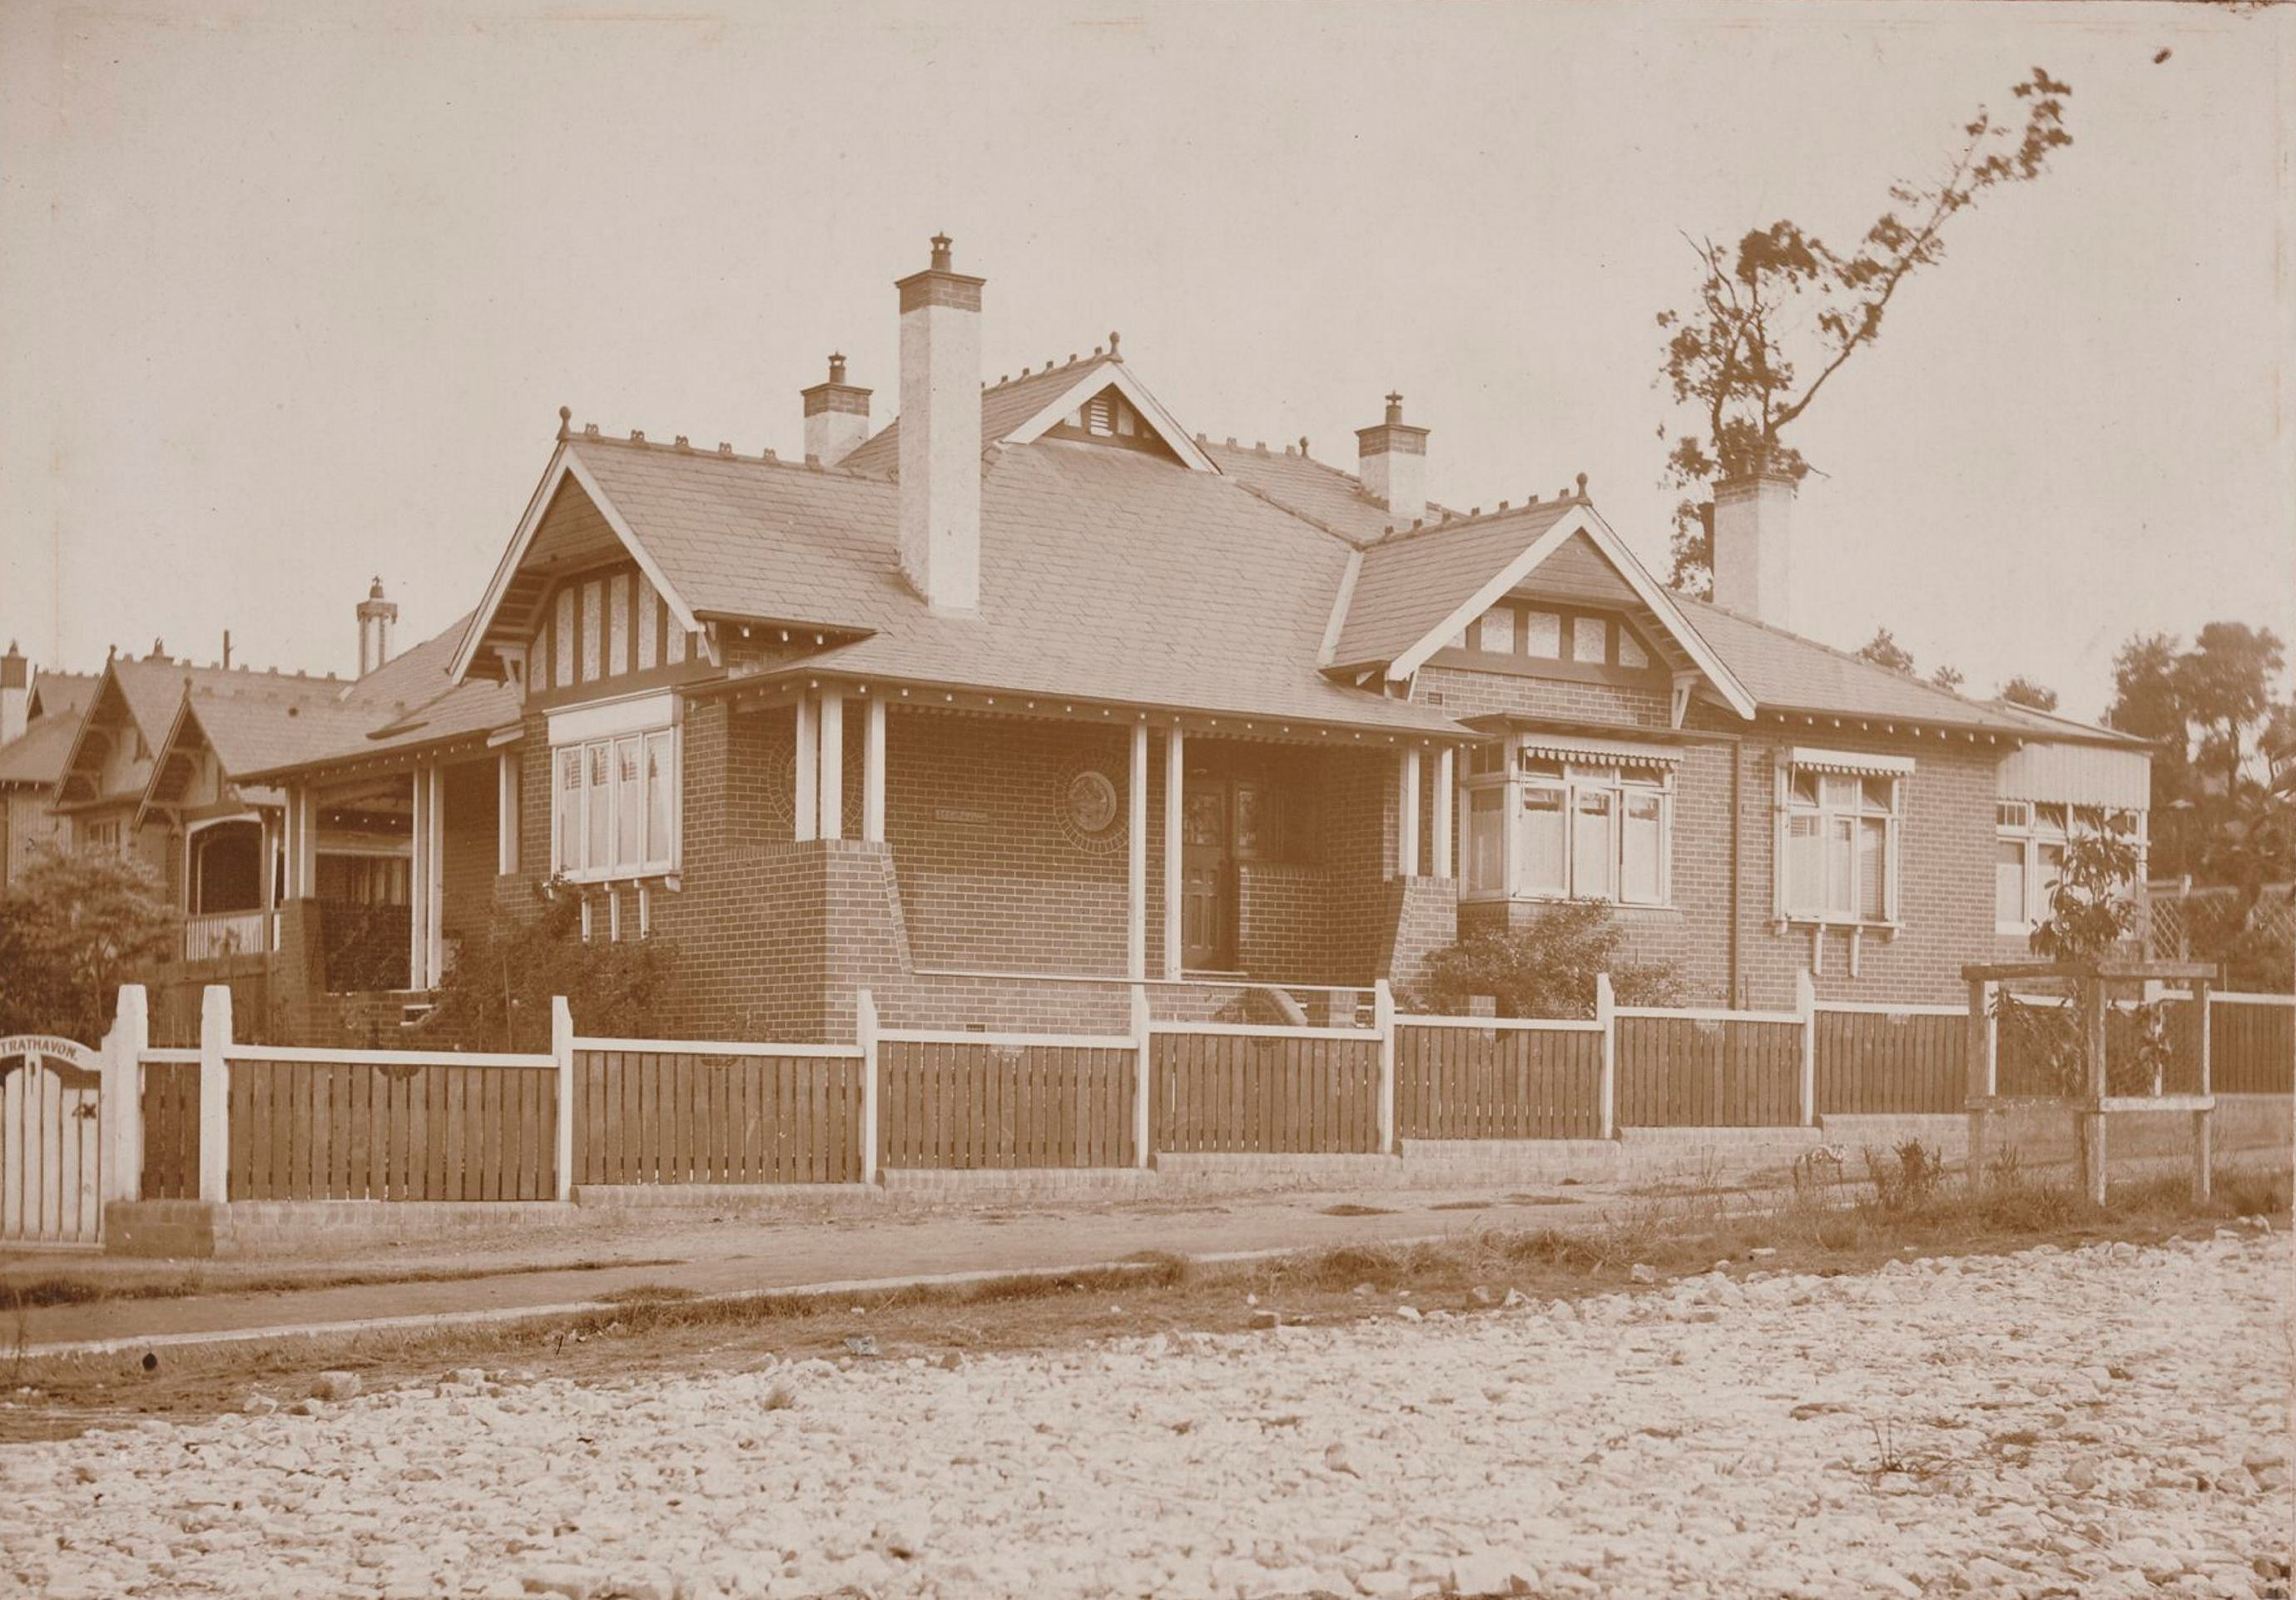 Strathavon, 4 Denman Avenue, Haberfield, N.S.W. around 1913 / photographer unknown.